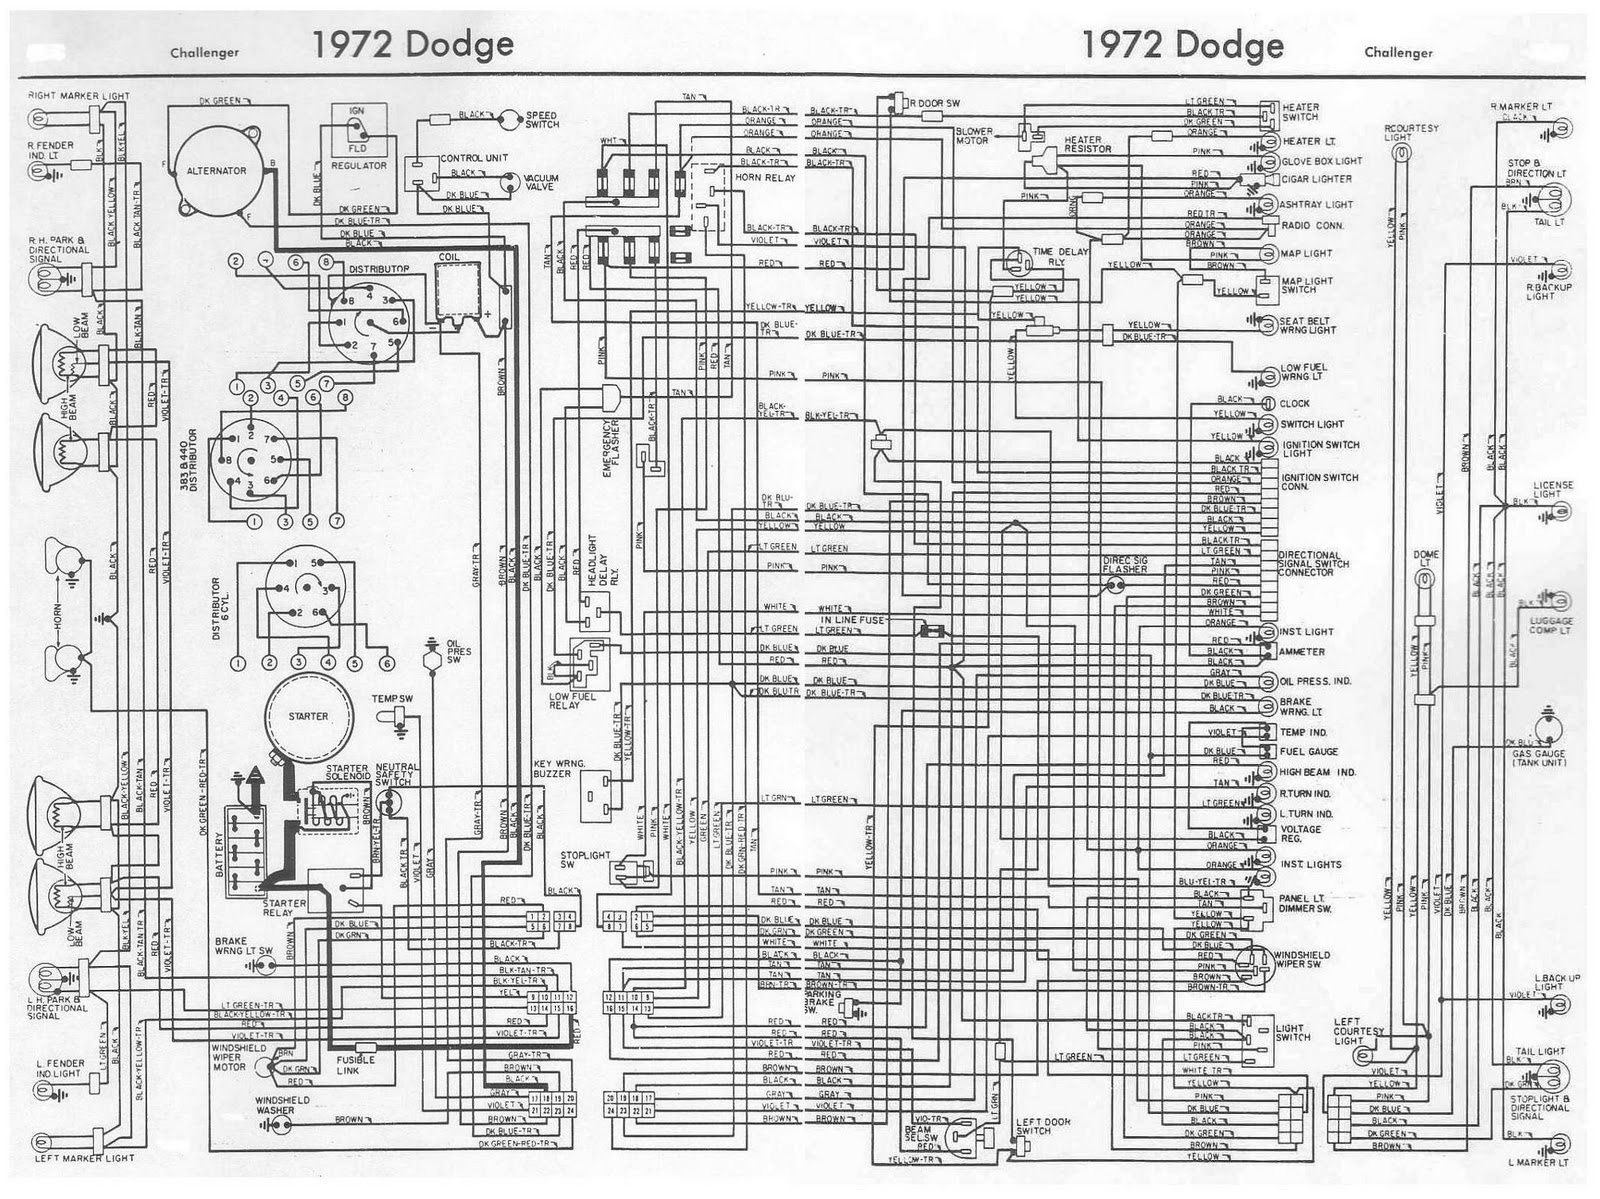 1970 Plymouth Road Runner Dash Wiring Diagram Simple Guide About 1964 Valiant Fantastic Crest